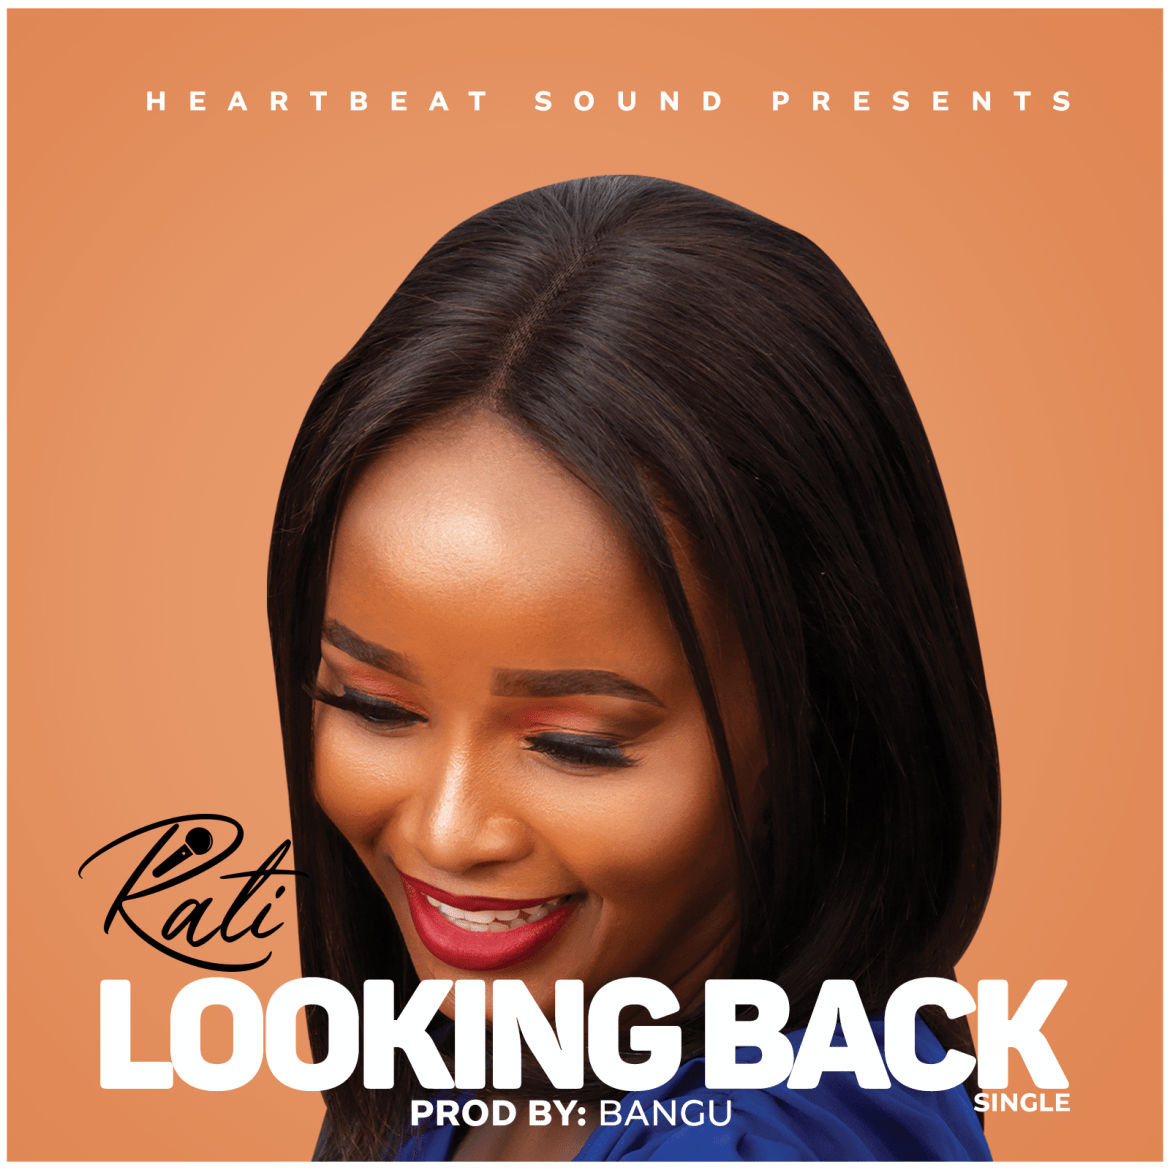 Afro Pop Artist Rati Releases Flirty Single Off Her Debut EP Emotions.